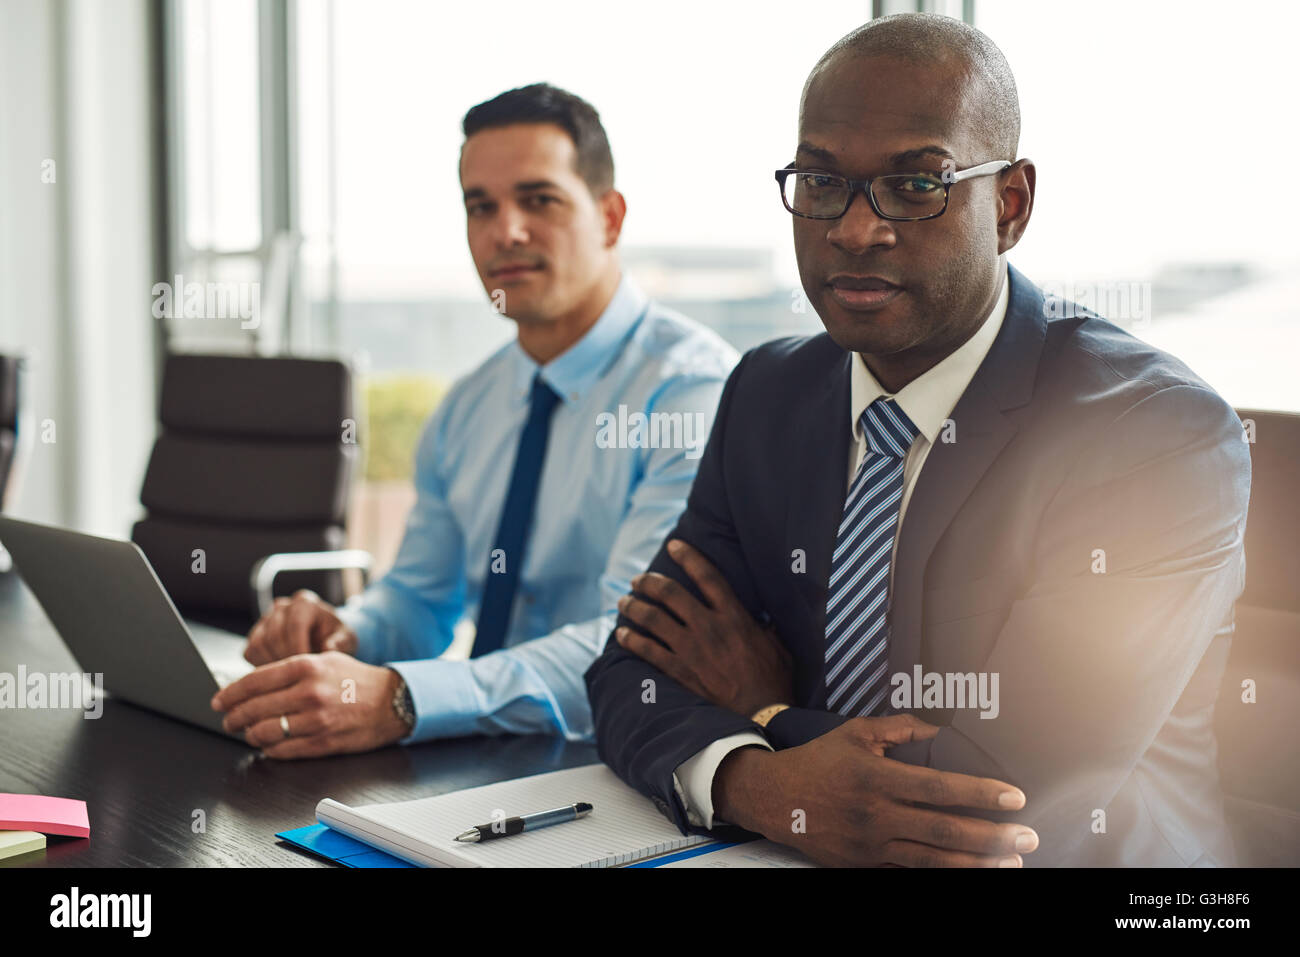 Successful multiracial business partners in a meeting together with a young Hispanic man using a laptop and African - Stock Image